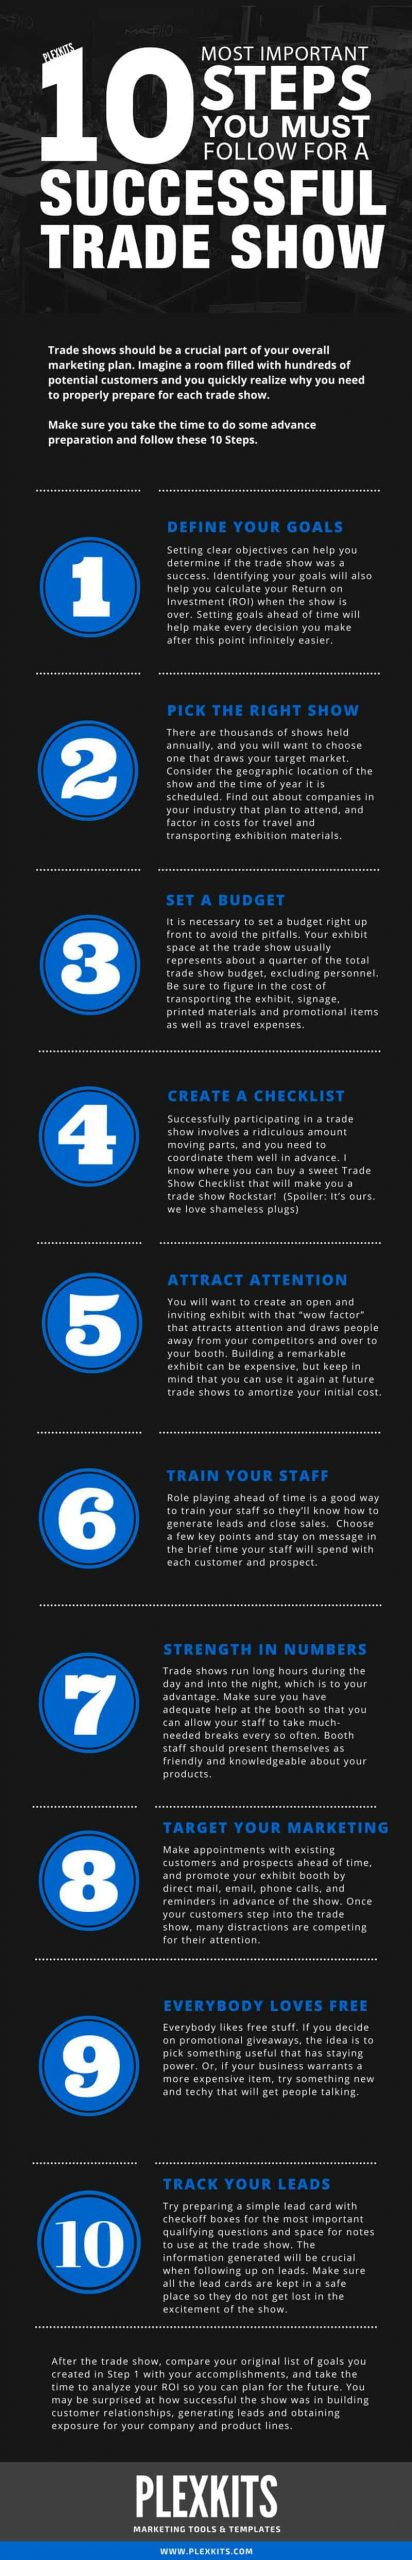 Steps you must follow for successful trade show